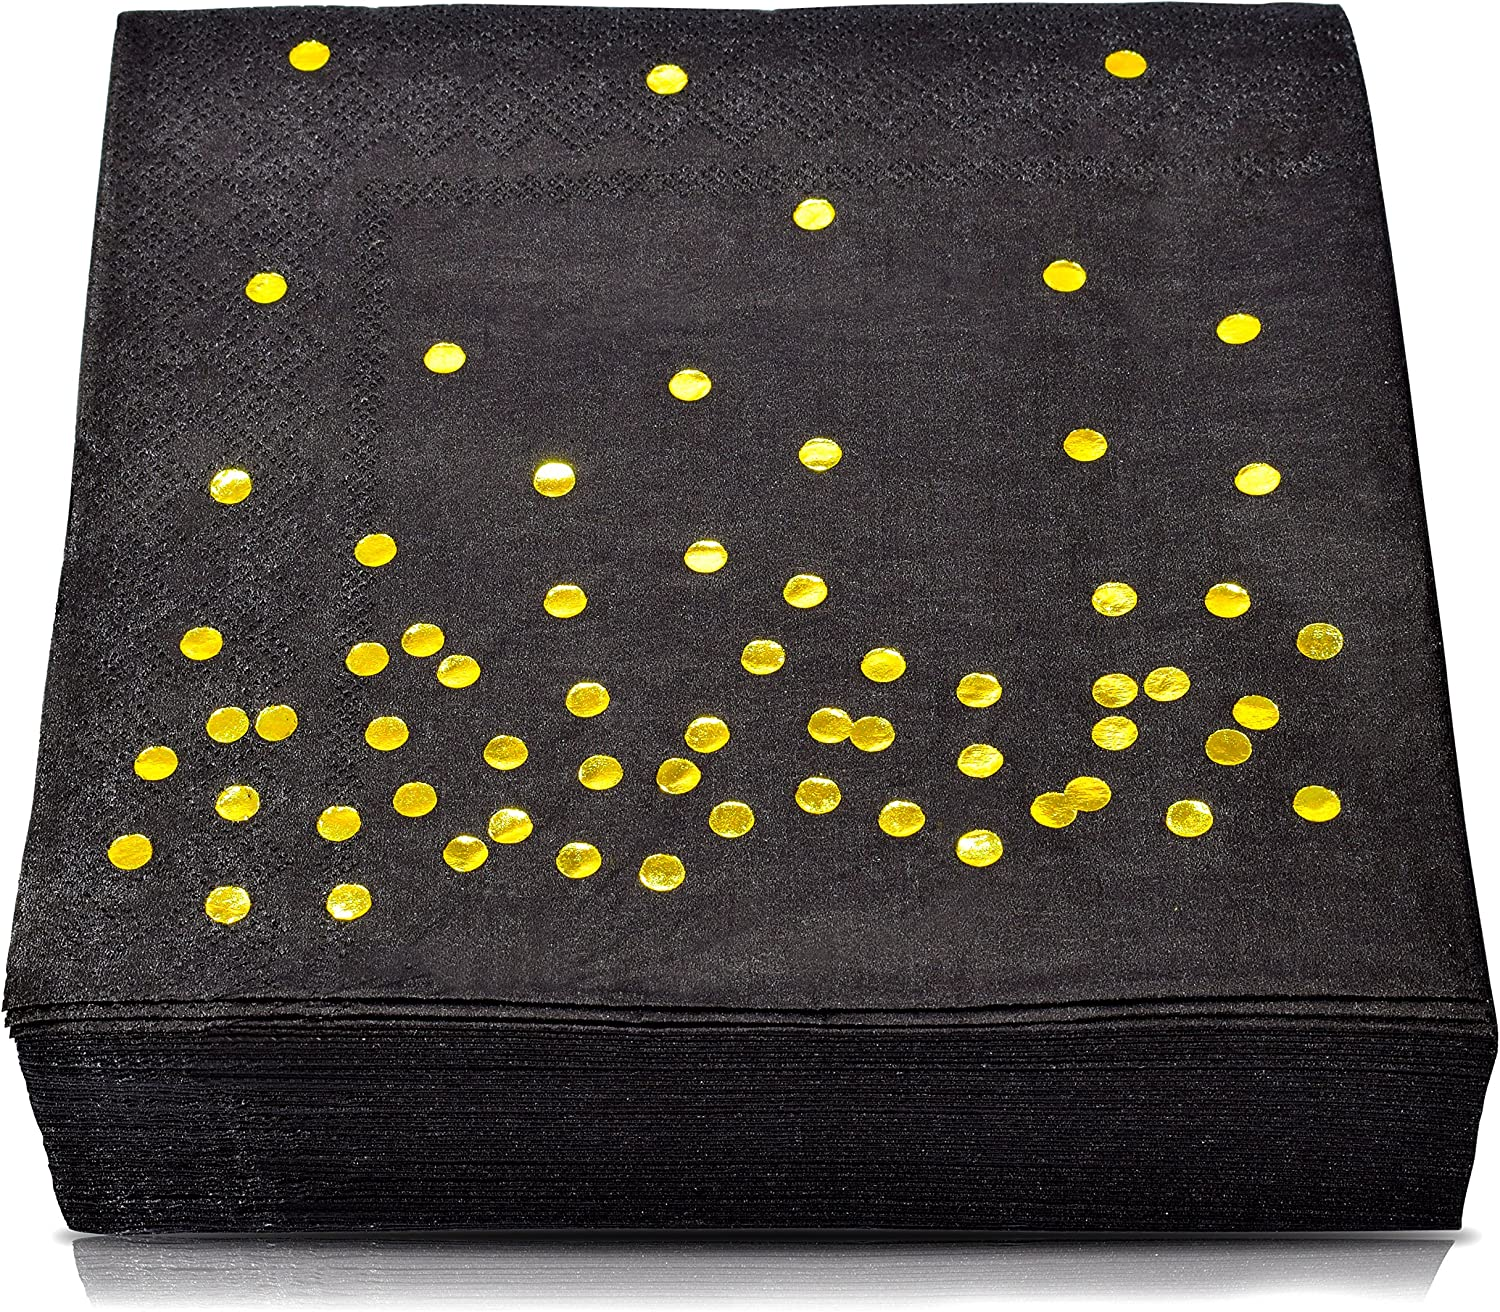 TROLIR Cocktail Napkins, Black with Gold Dots, 3-ply, Pack of 50 Disposable Paper Napkins Stamped with Sparkly Gold Foil Polka Dots, Ideal for Wedding, Party, Birthday, Dinner, Lunch, Cocktail